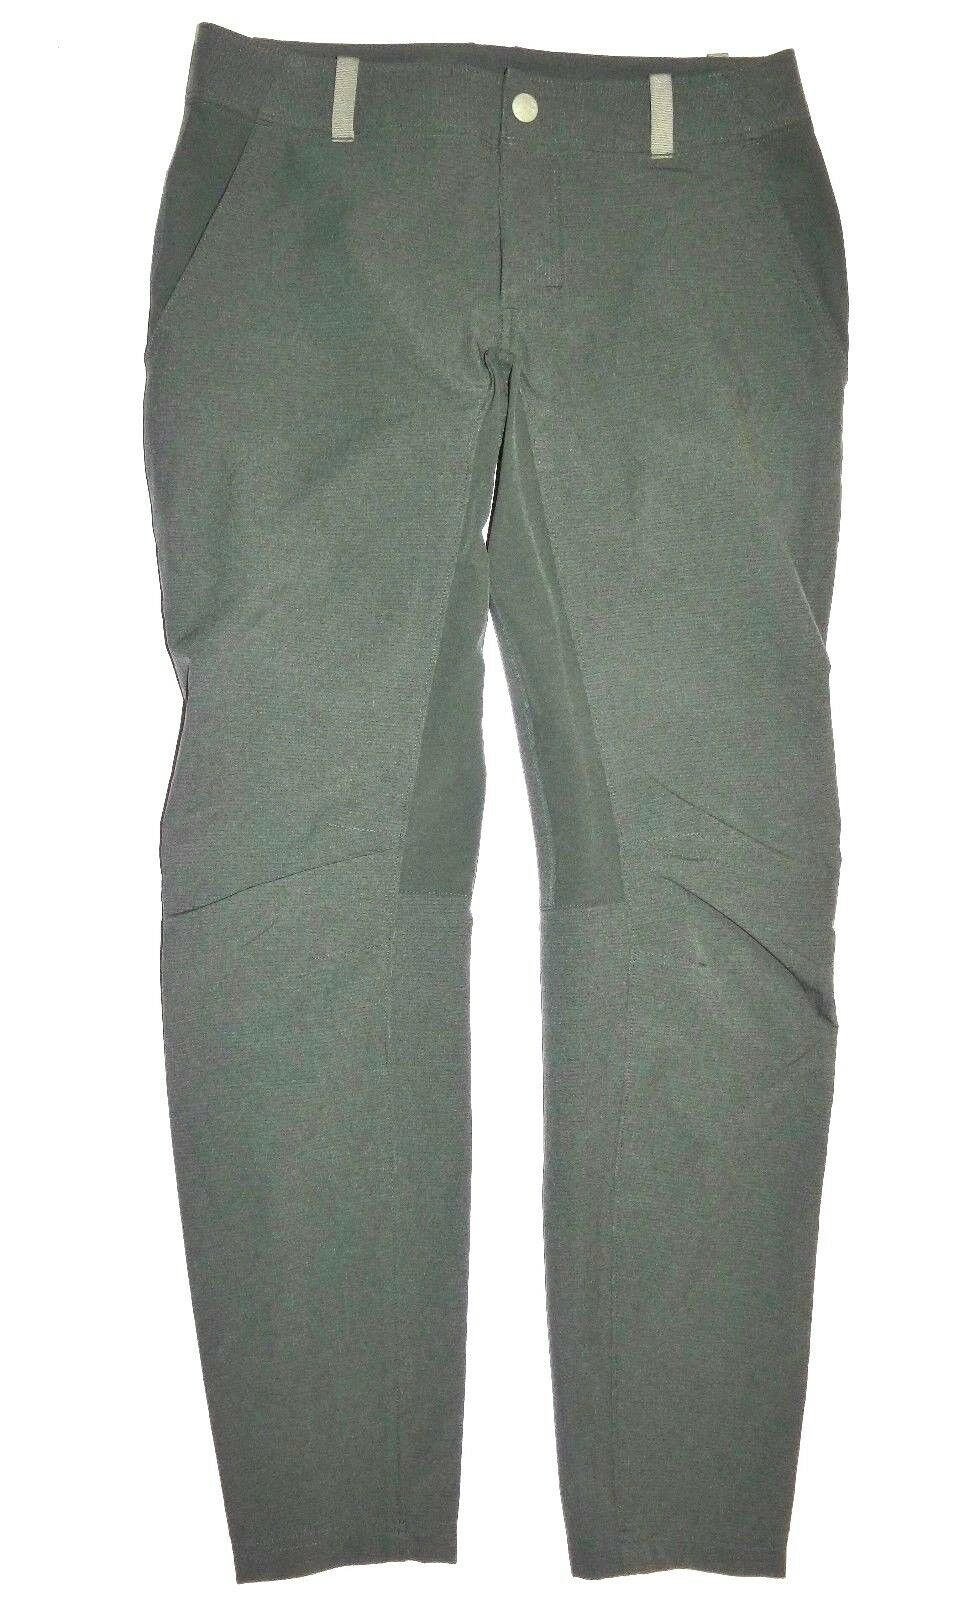 New Under Armour Damenschuhe Storm HeatGear Polyester Polyester Polyester Hiking Pants Größe 4 e54ab3